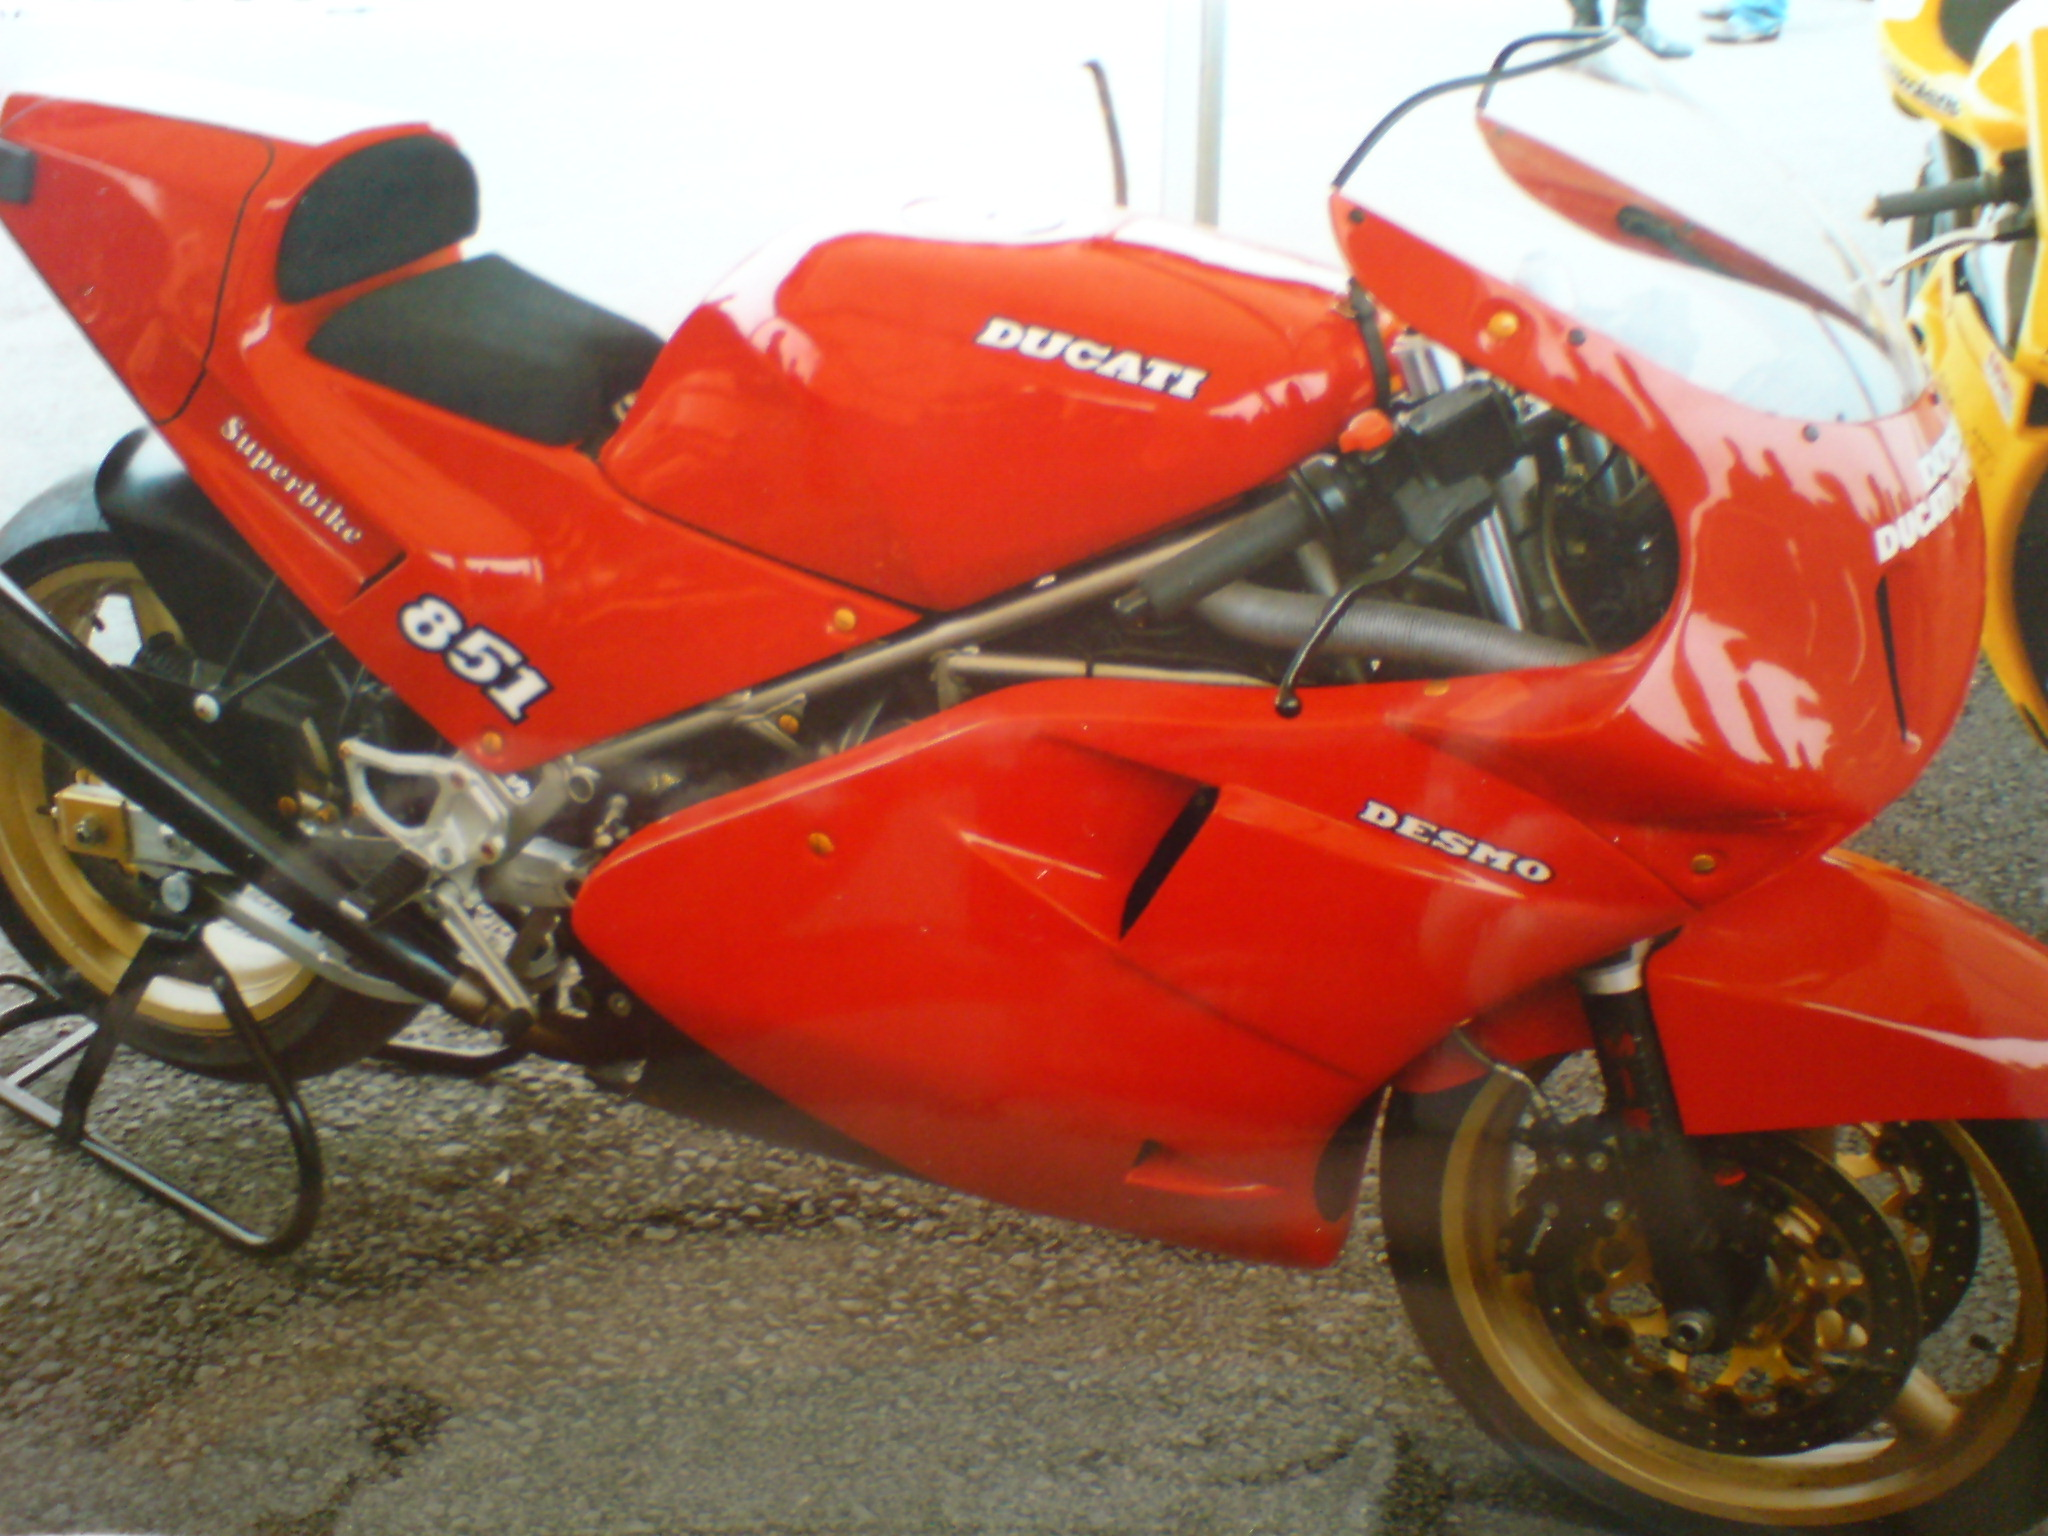 sp3 851/888 superbike - ducati forum | the home for ducati